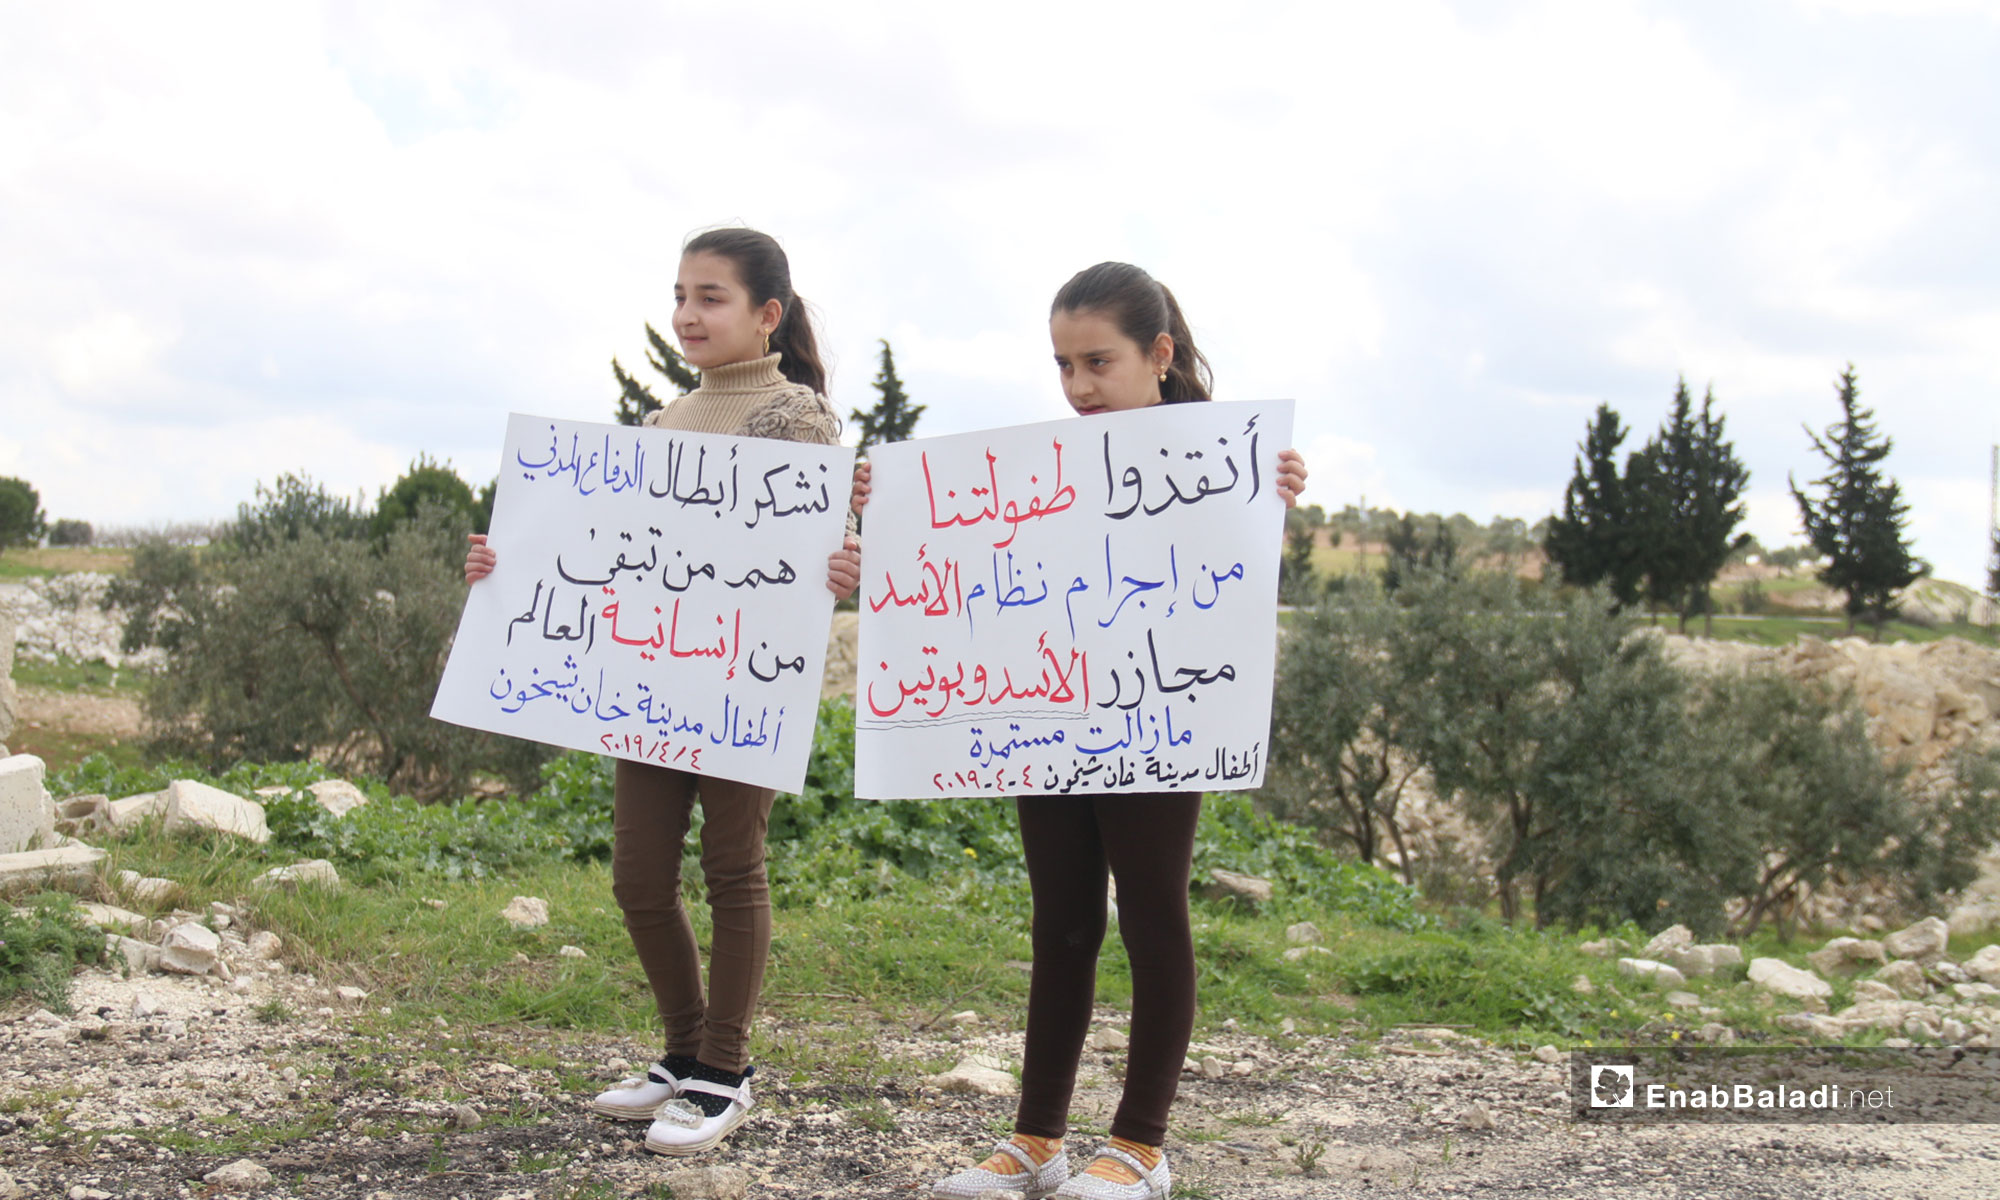 "A vigil at the second anniversary of the chemical massacre of Khan Shaykhun, rural Idlib – April 4, 2019 (Enab Baladi) The signs held by the two little girls say: ""Save our childhood from the criminality of the al-Assad regime; Massacres by al-Assad and Putin are continuing/ We thank the heroes of the Civil Defense, they are what is left of the world's humanity, the children of the city of Khan Shaykhun."""